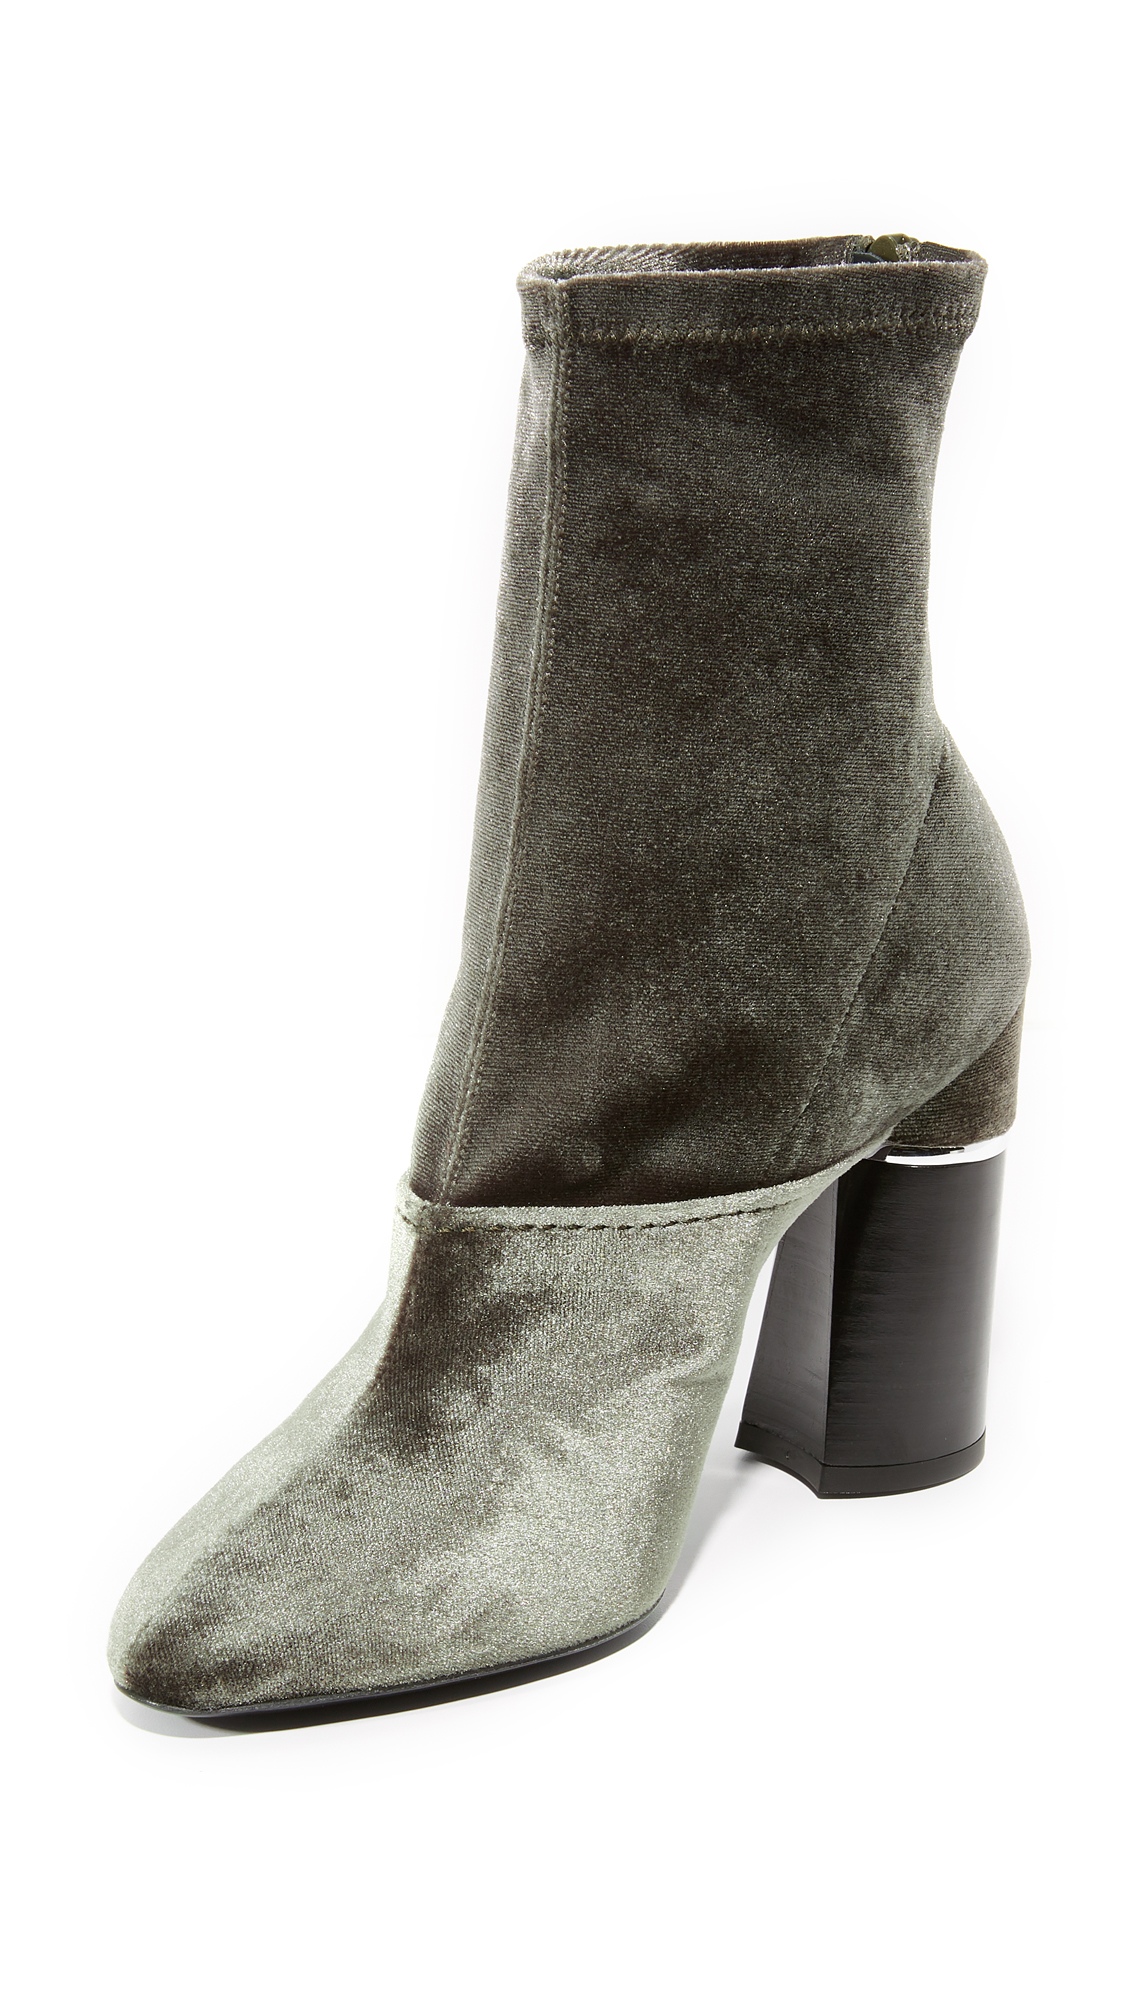 3.1 Phillip Lim Kyoto Booties - Olive